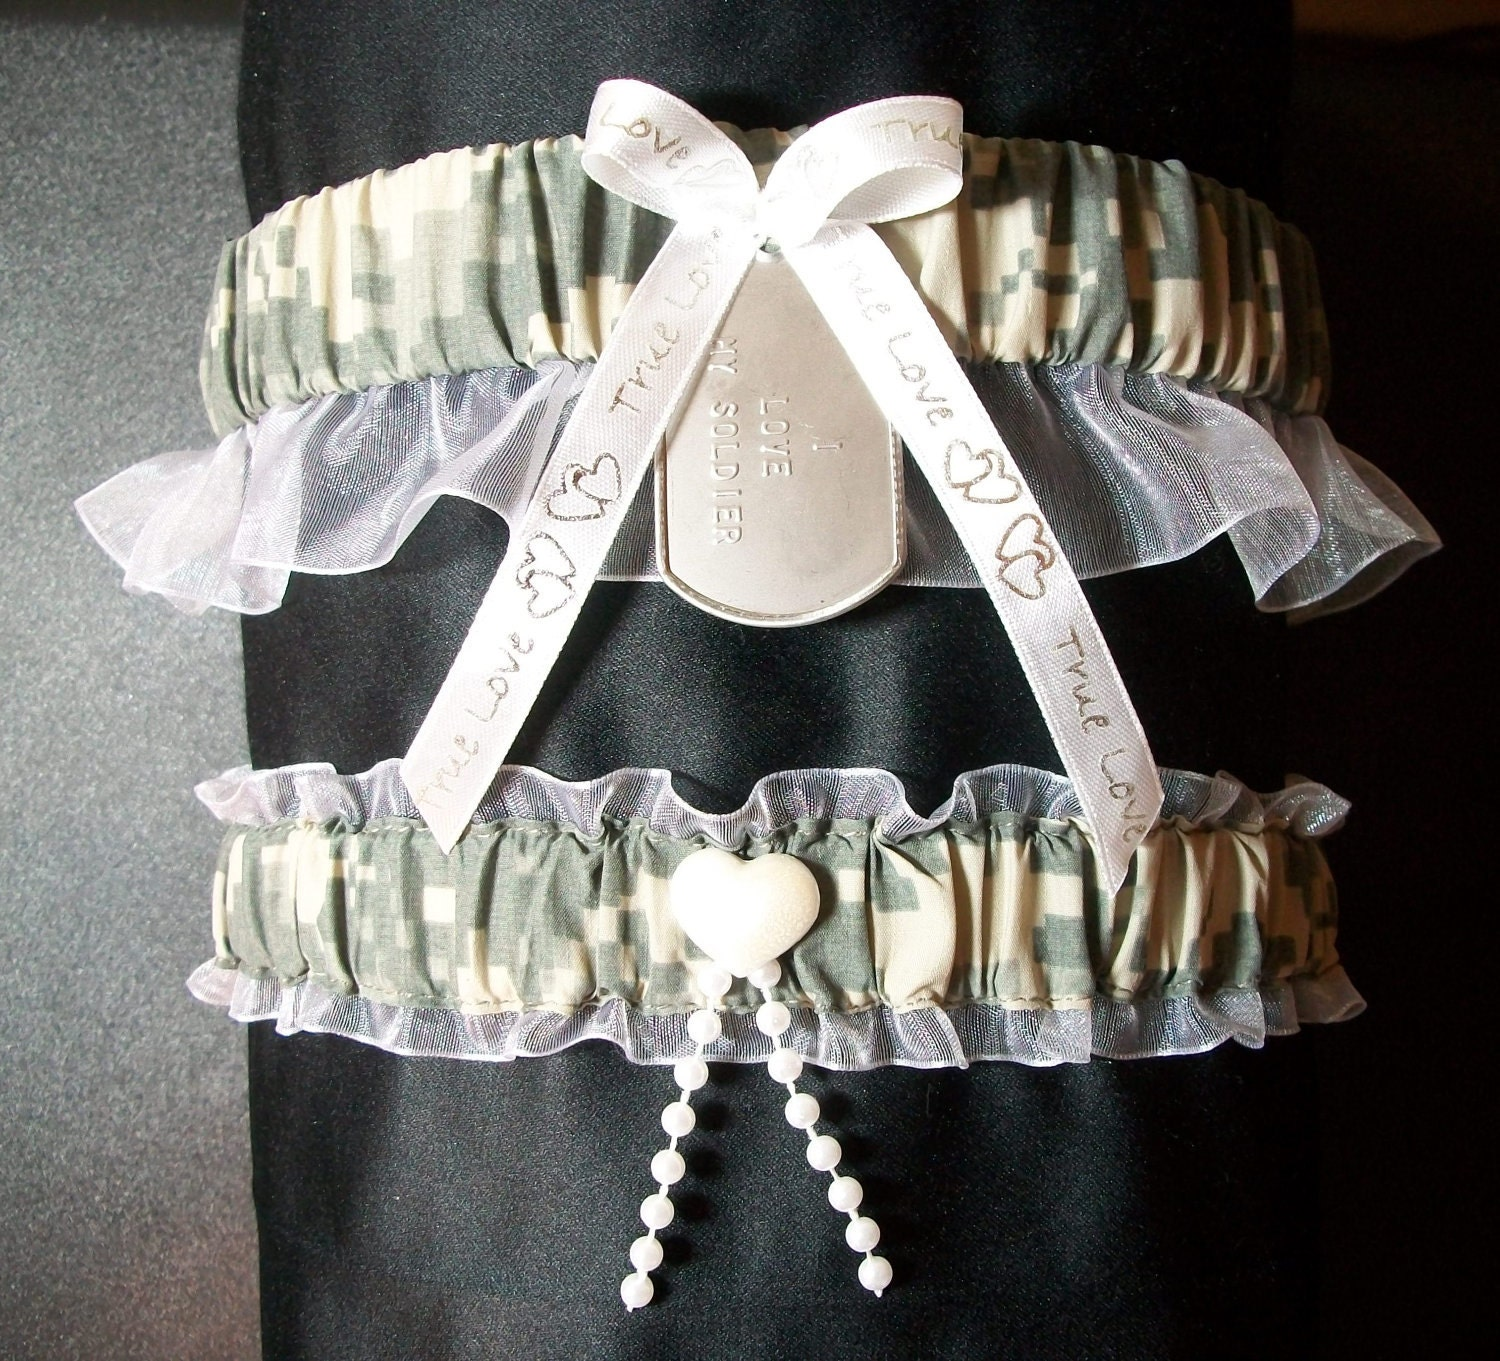 A Surprise Arch For The Bride Coast Guard Wedding By: Military Digital Camo Garter Set With Personalized Dog Tag In